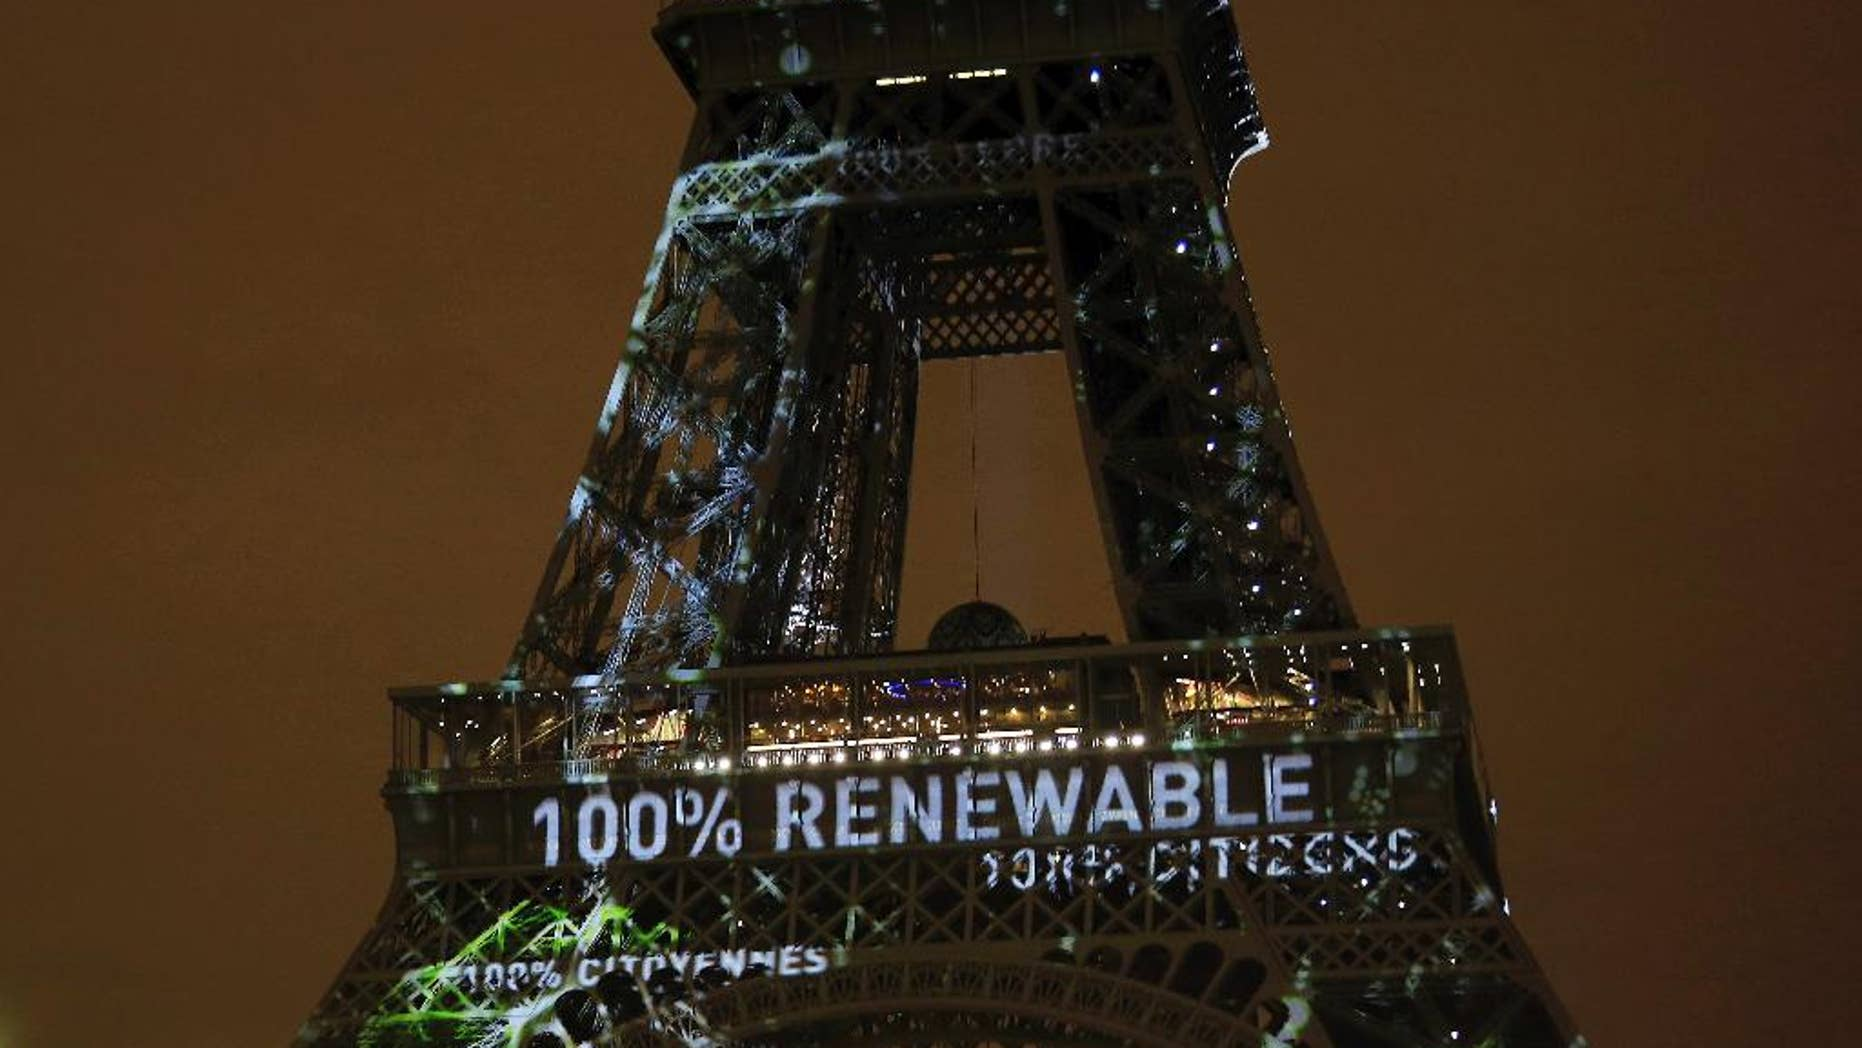 FILE- In this Sunday, Nov. 29, 2015 file photo, an artwork entitled 'One Heart One Tree' by artist Naziha Mestaoui is displayed on the Eiffel tower ahead of the 2015 Paris Climate Conference, in Paris. The Paris Agreement on climate change comes into force Friday Nov. 4, 2016, after a year with remarkable success in international efforts to slash man-made emissions of carbon dioxide and other global warming gases. (AP Photo/Thibault Camus, FILE)